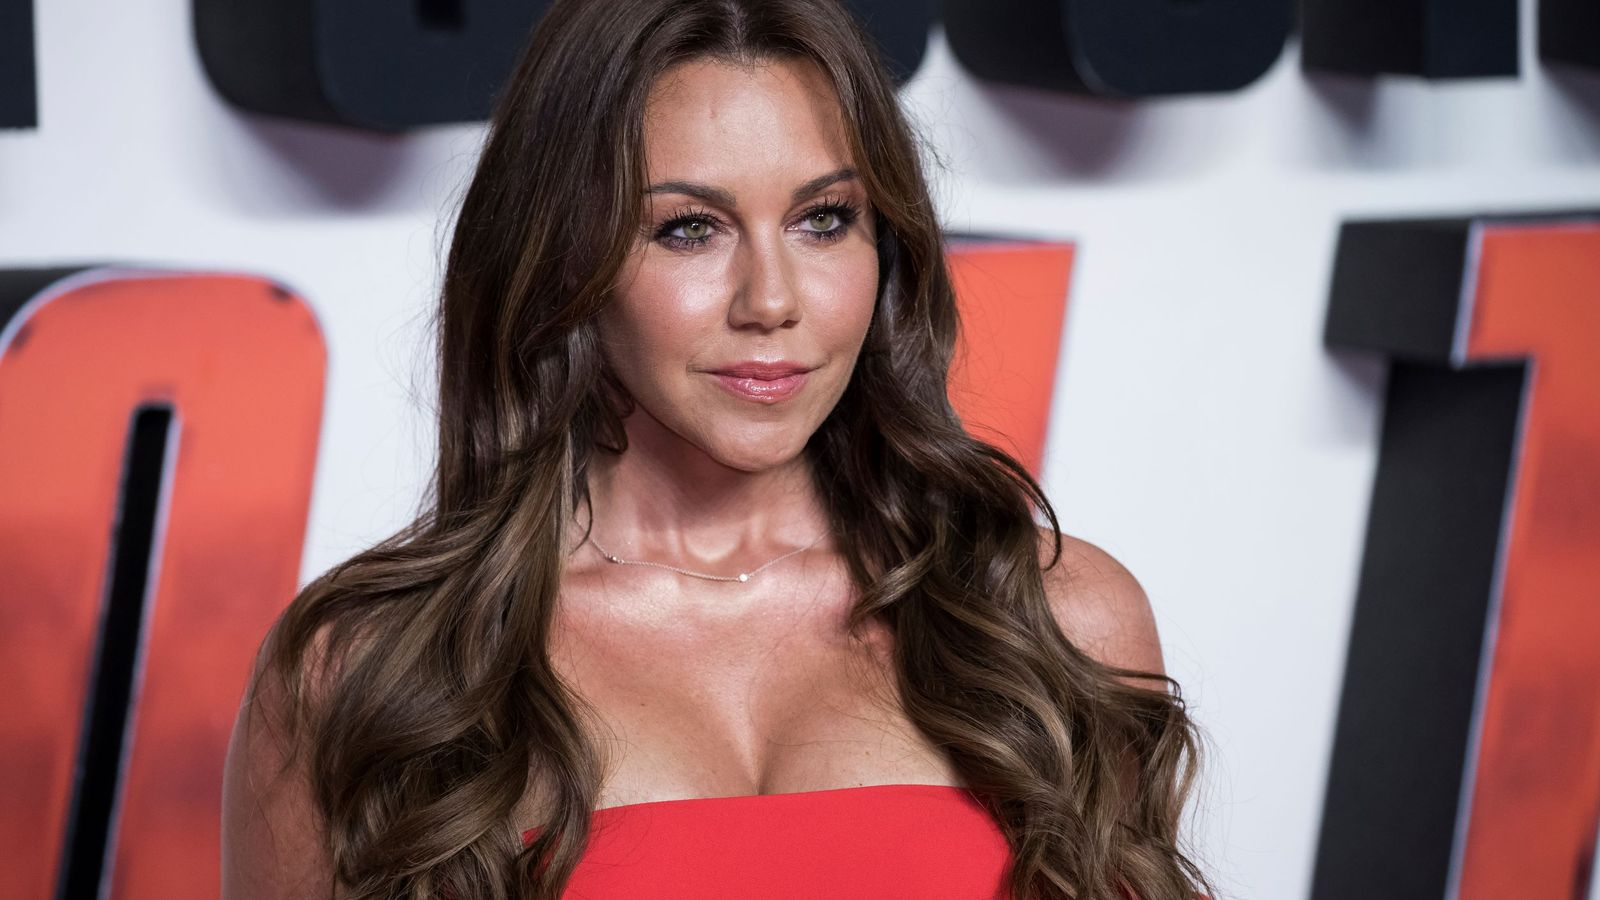 Michelle Heaton shares stunning picture from depths of alcohol dependancy to indicate restoration after 20 weeks of sobriety